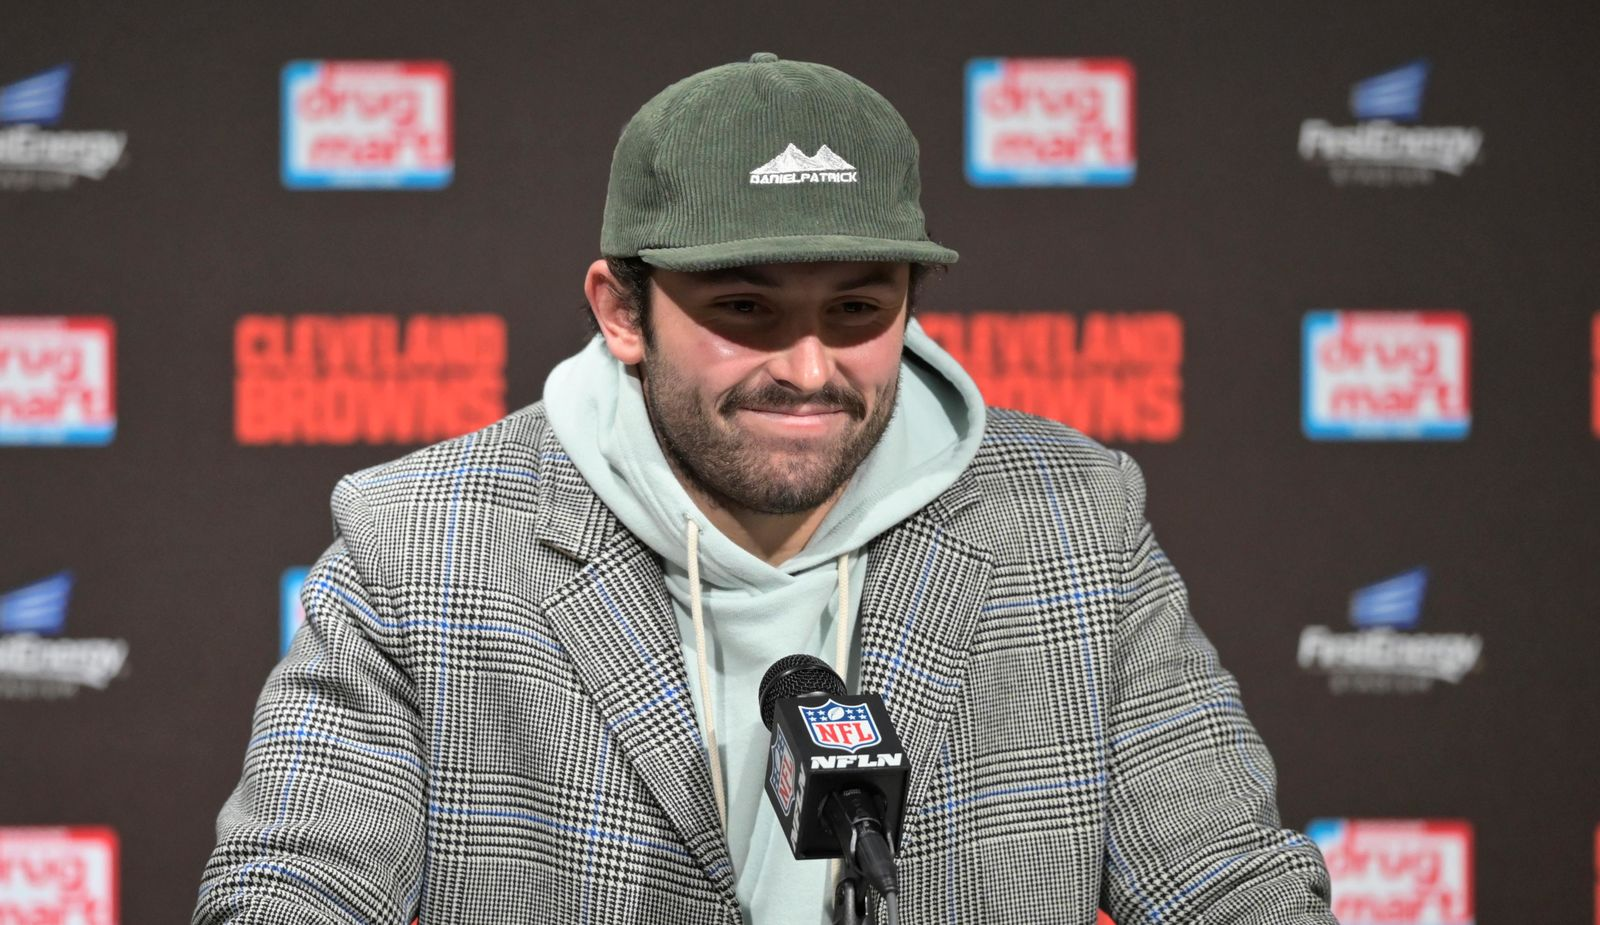 Cleveland Browns quarterback Baker Mayfield answers questions during a news conference after the team's NFL football game against the Pittsburgh Steelers, early Friday, Nov. 15, 2019, in Cleveland. The Browns won 21-7. (AP Photo/David Richard)